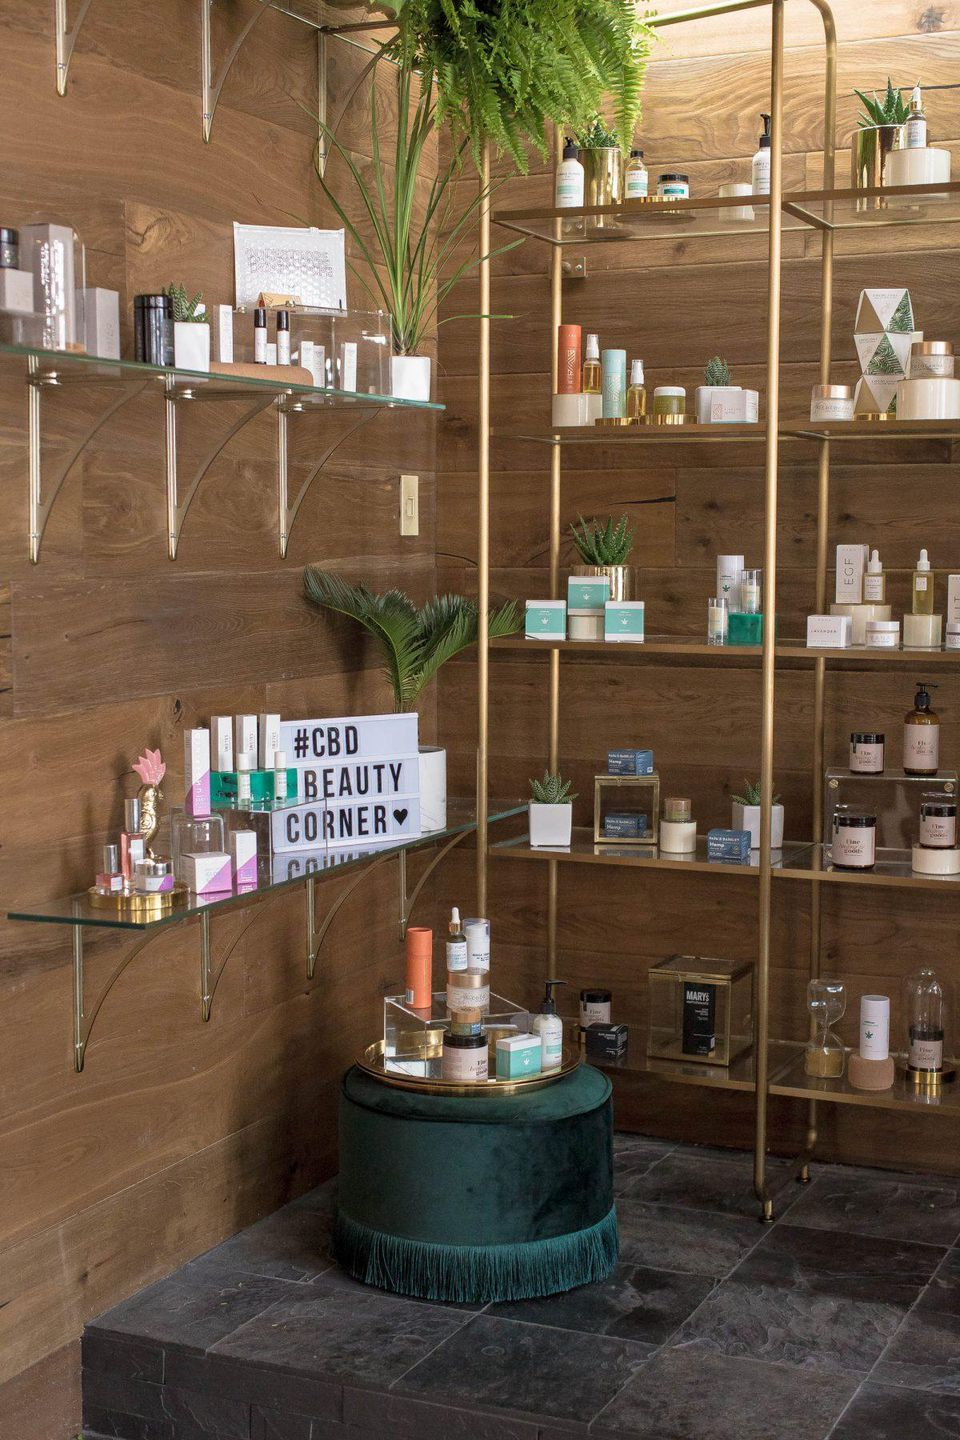 The CBD Beauty Corner opens on Saturday, May 11 at The Salon Project in Saks Fifth Avenue's NYC flagship.  CASSELL A. FERERE